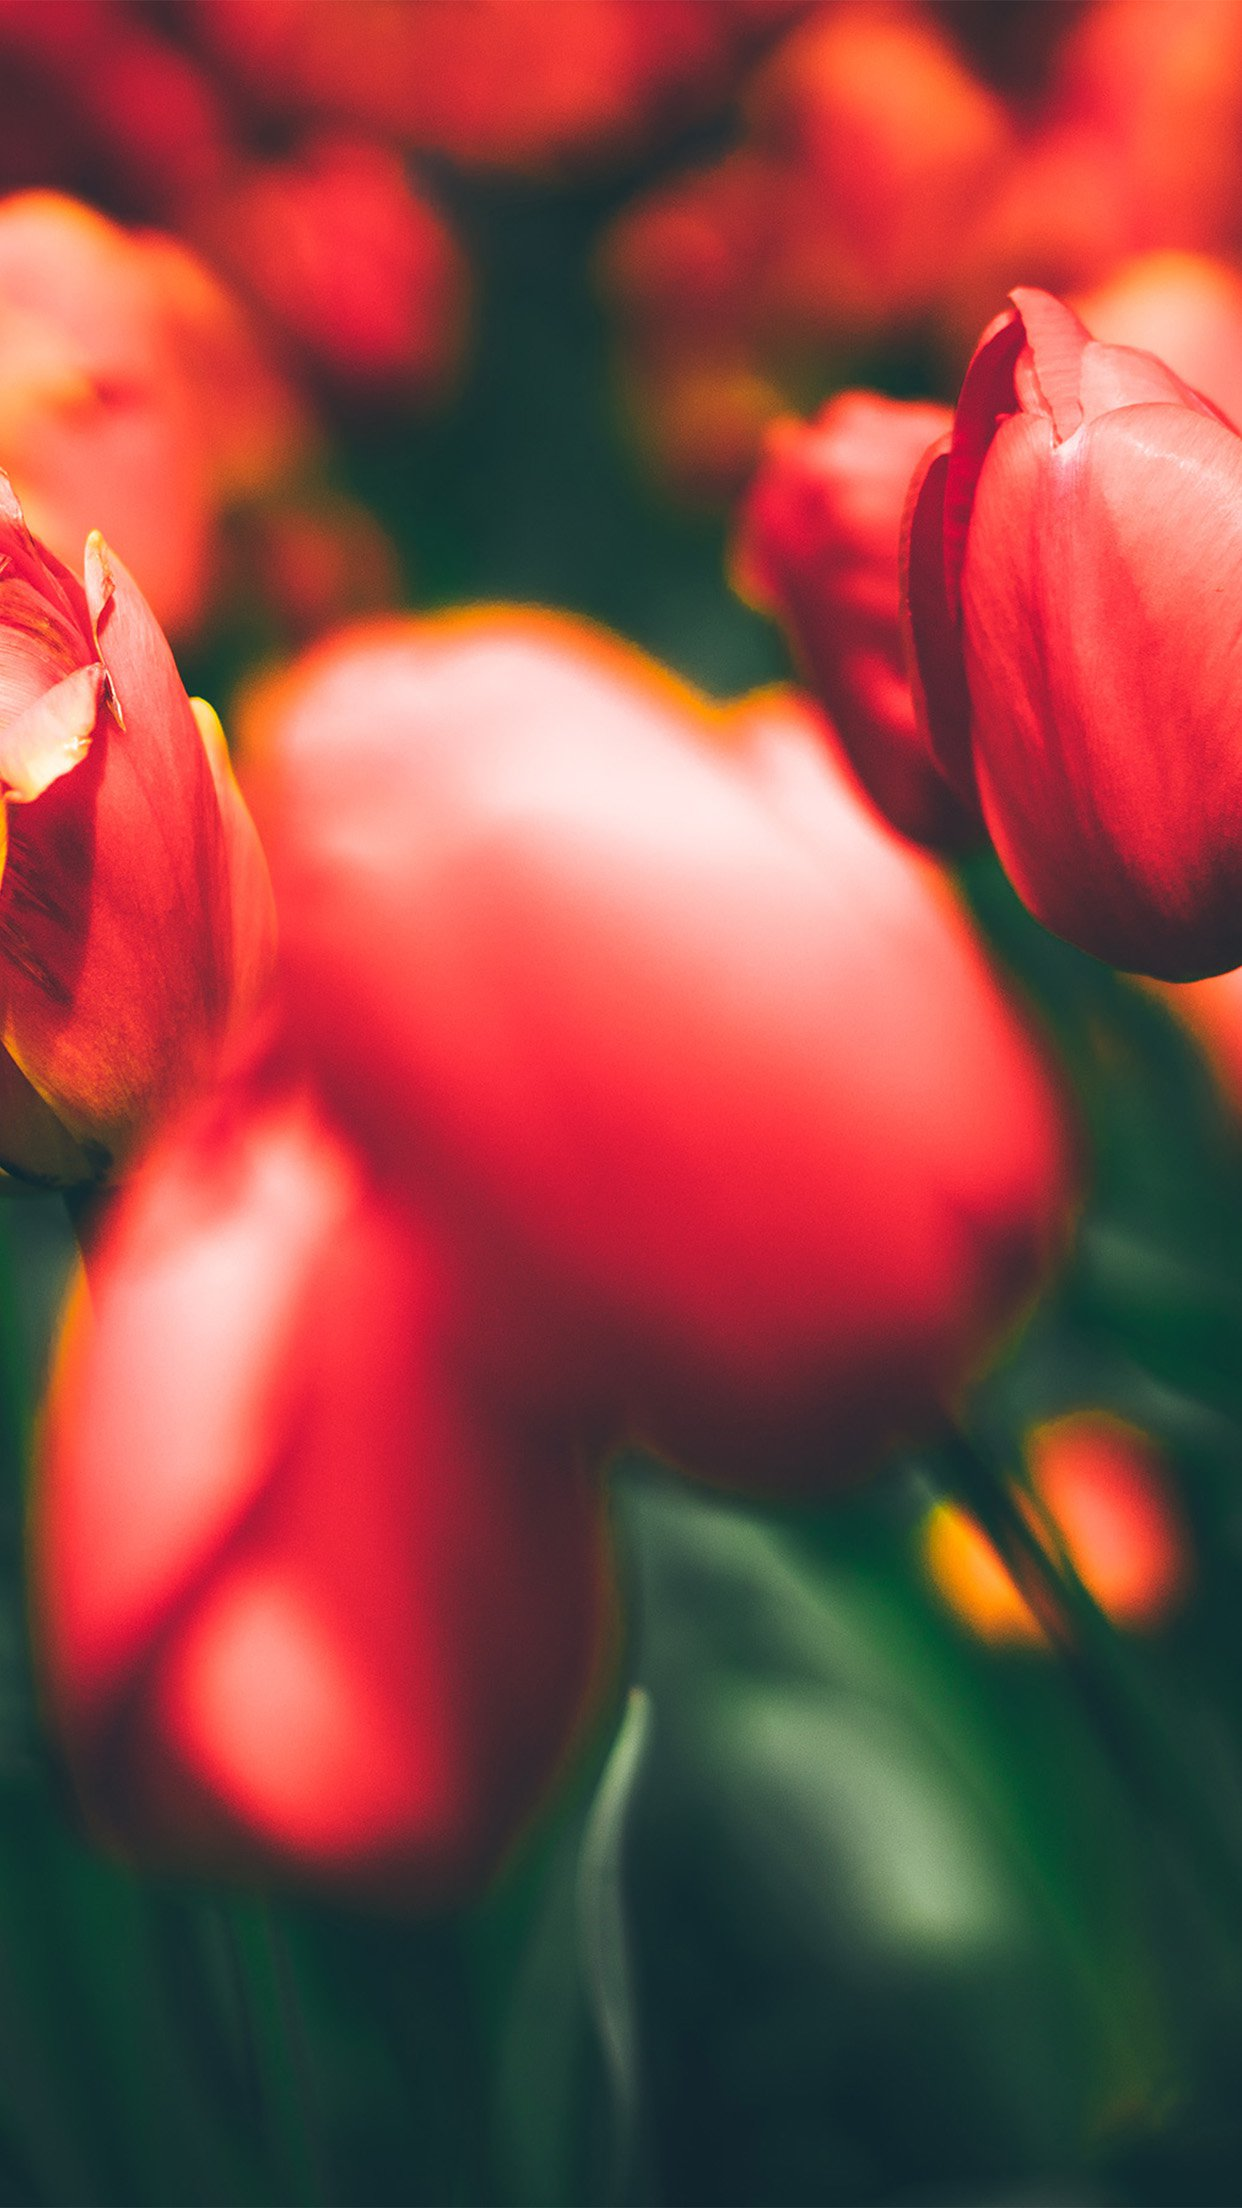 Tulips Red Flower Nature Sprin Android wallpaper